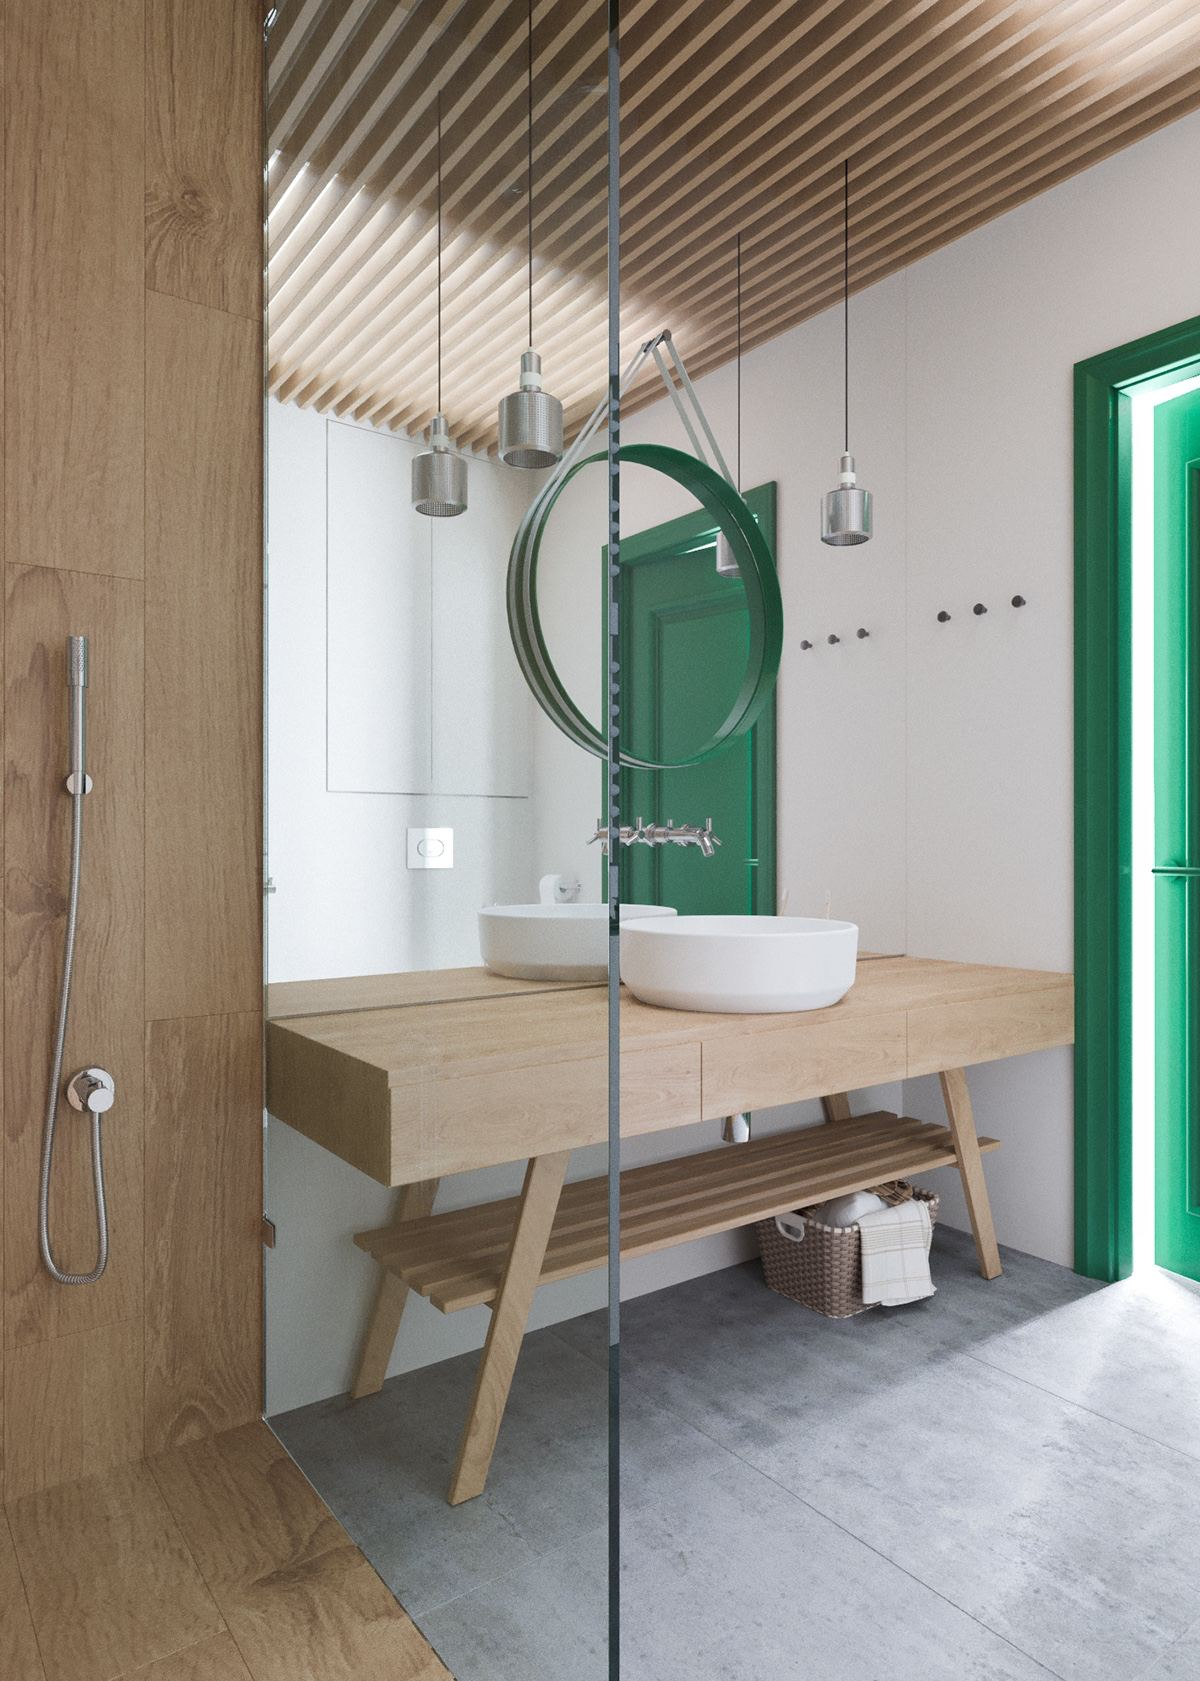 Creative Bathroom Mirror Ideas - A beautiful one bedroom bachelor apartment under 100 square meters with floor plan